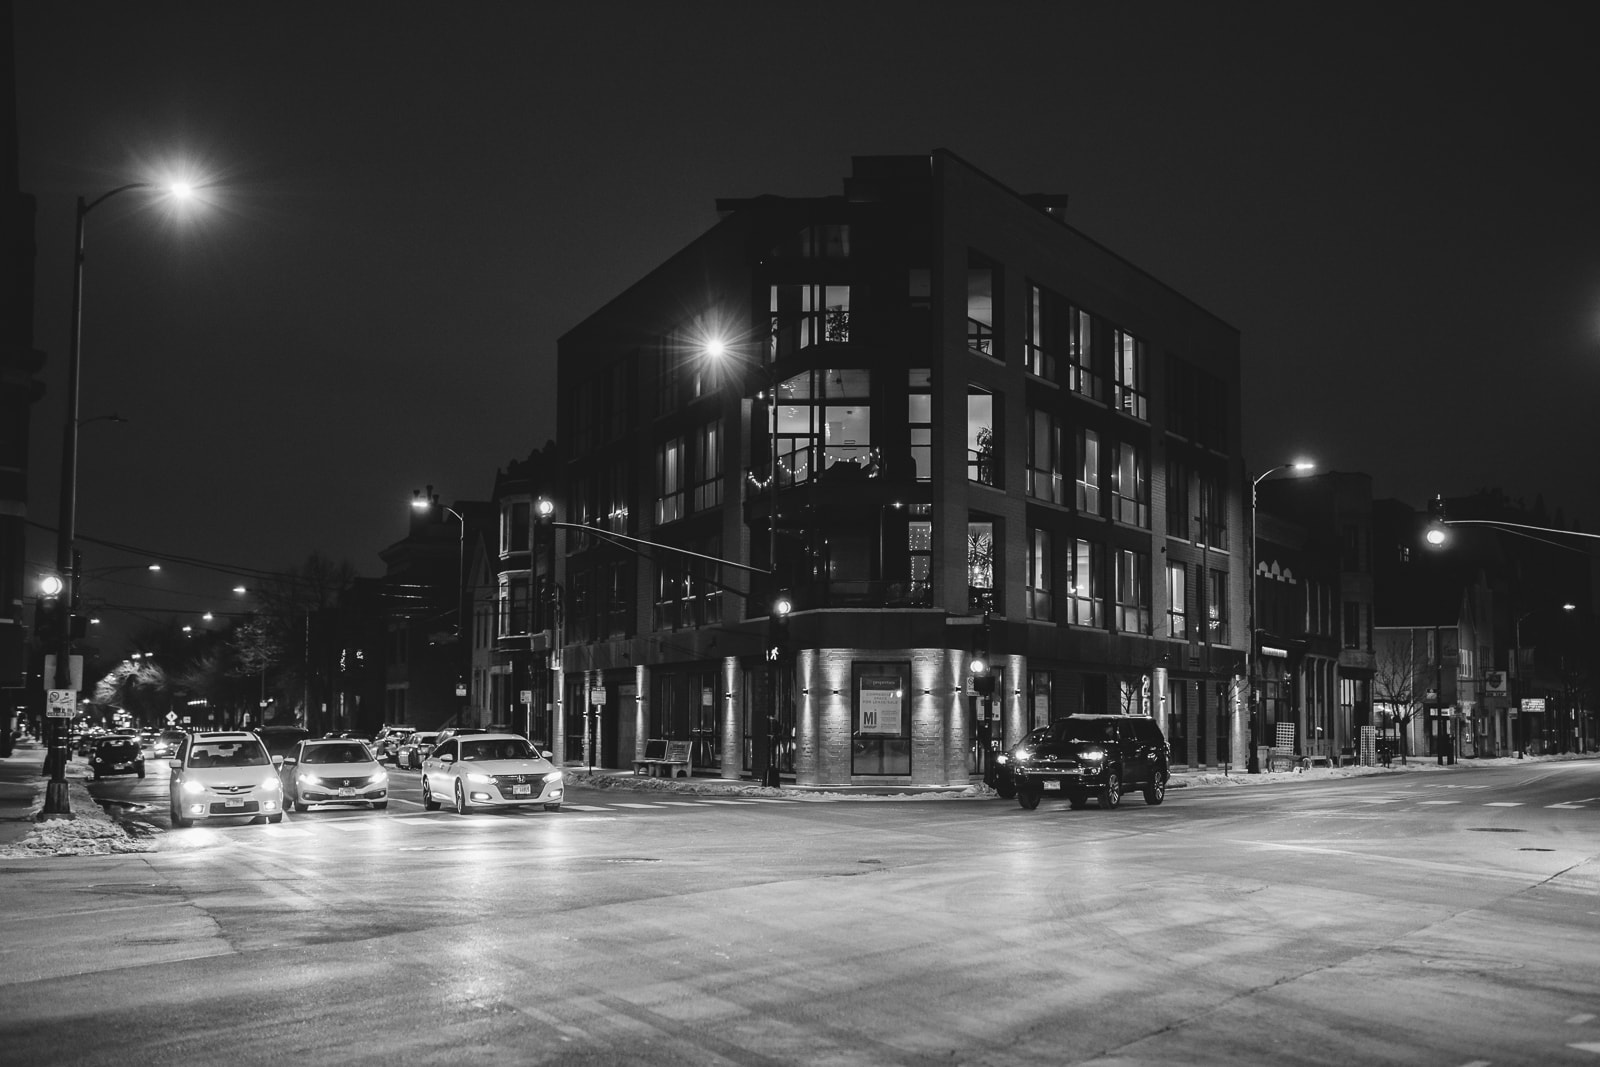 The empty streets of Chicago at Night, 2020